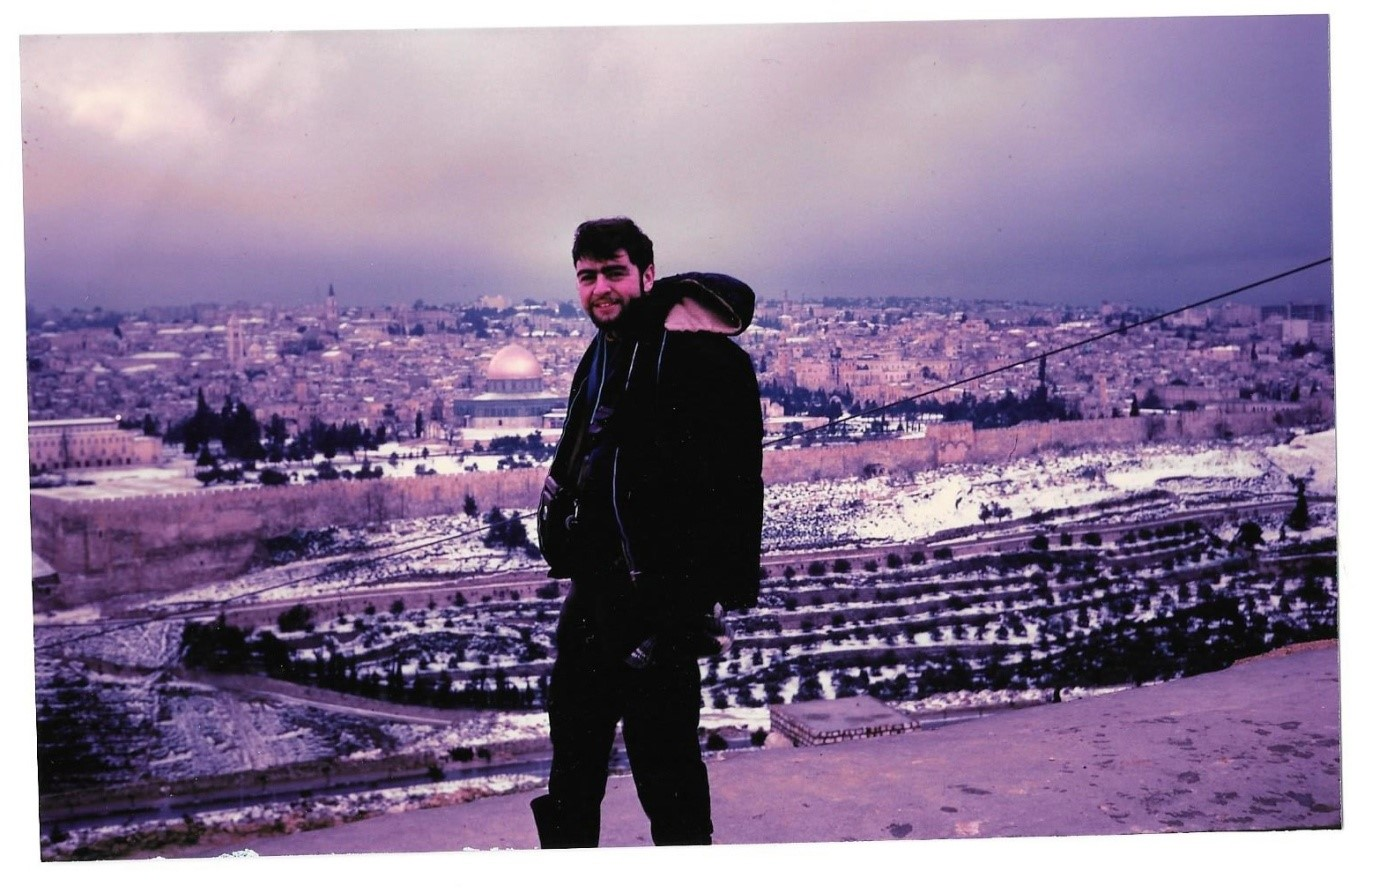 [In the camera that was found at the bombing site was this photo which was taken with the scenery of Jerusalem. This photo was later developed as Leon did not get the chance to see it]